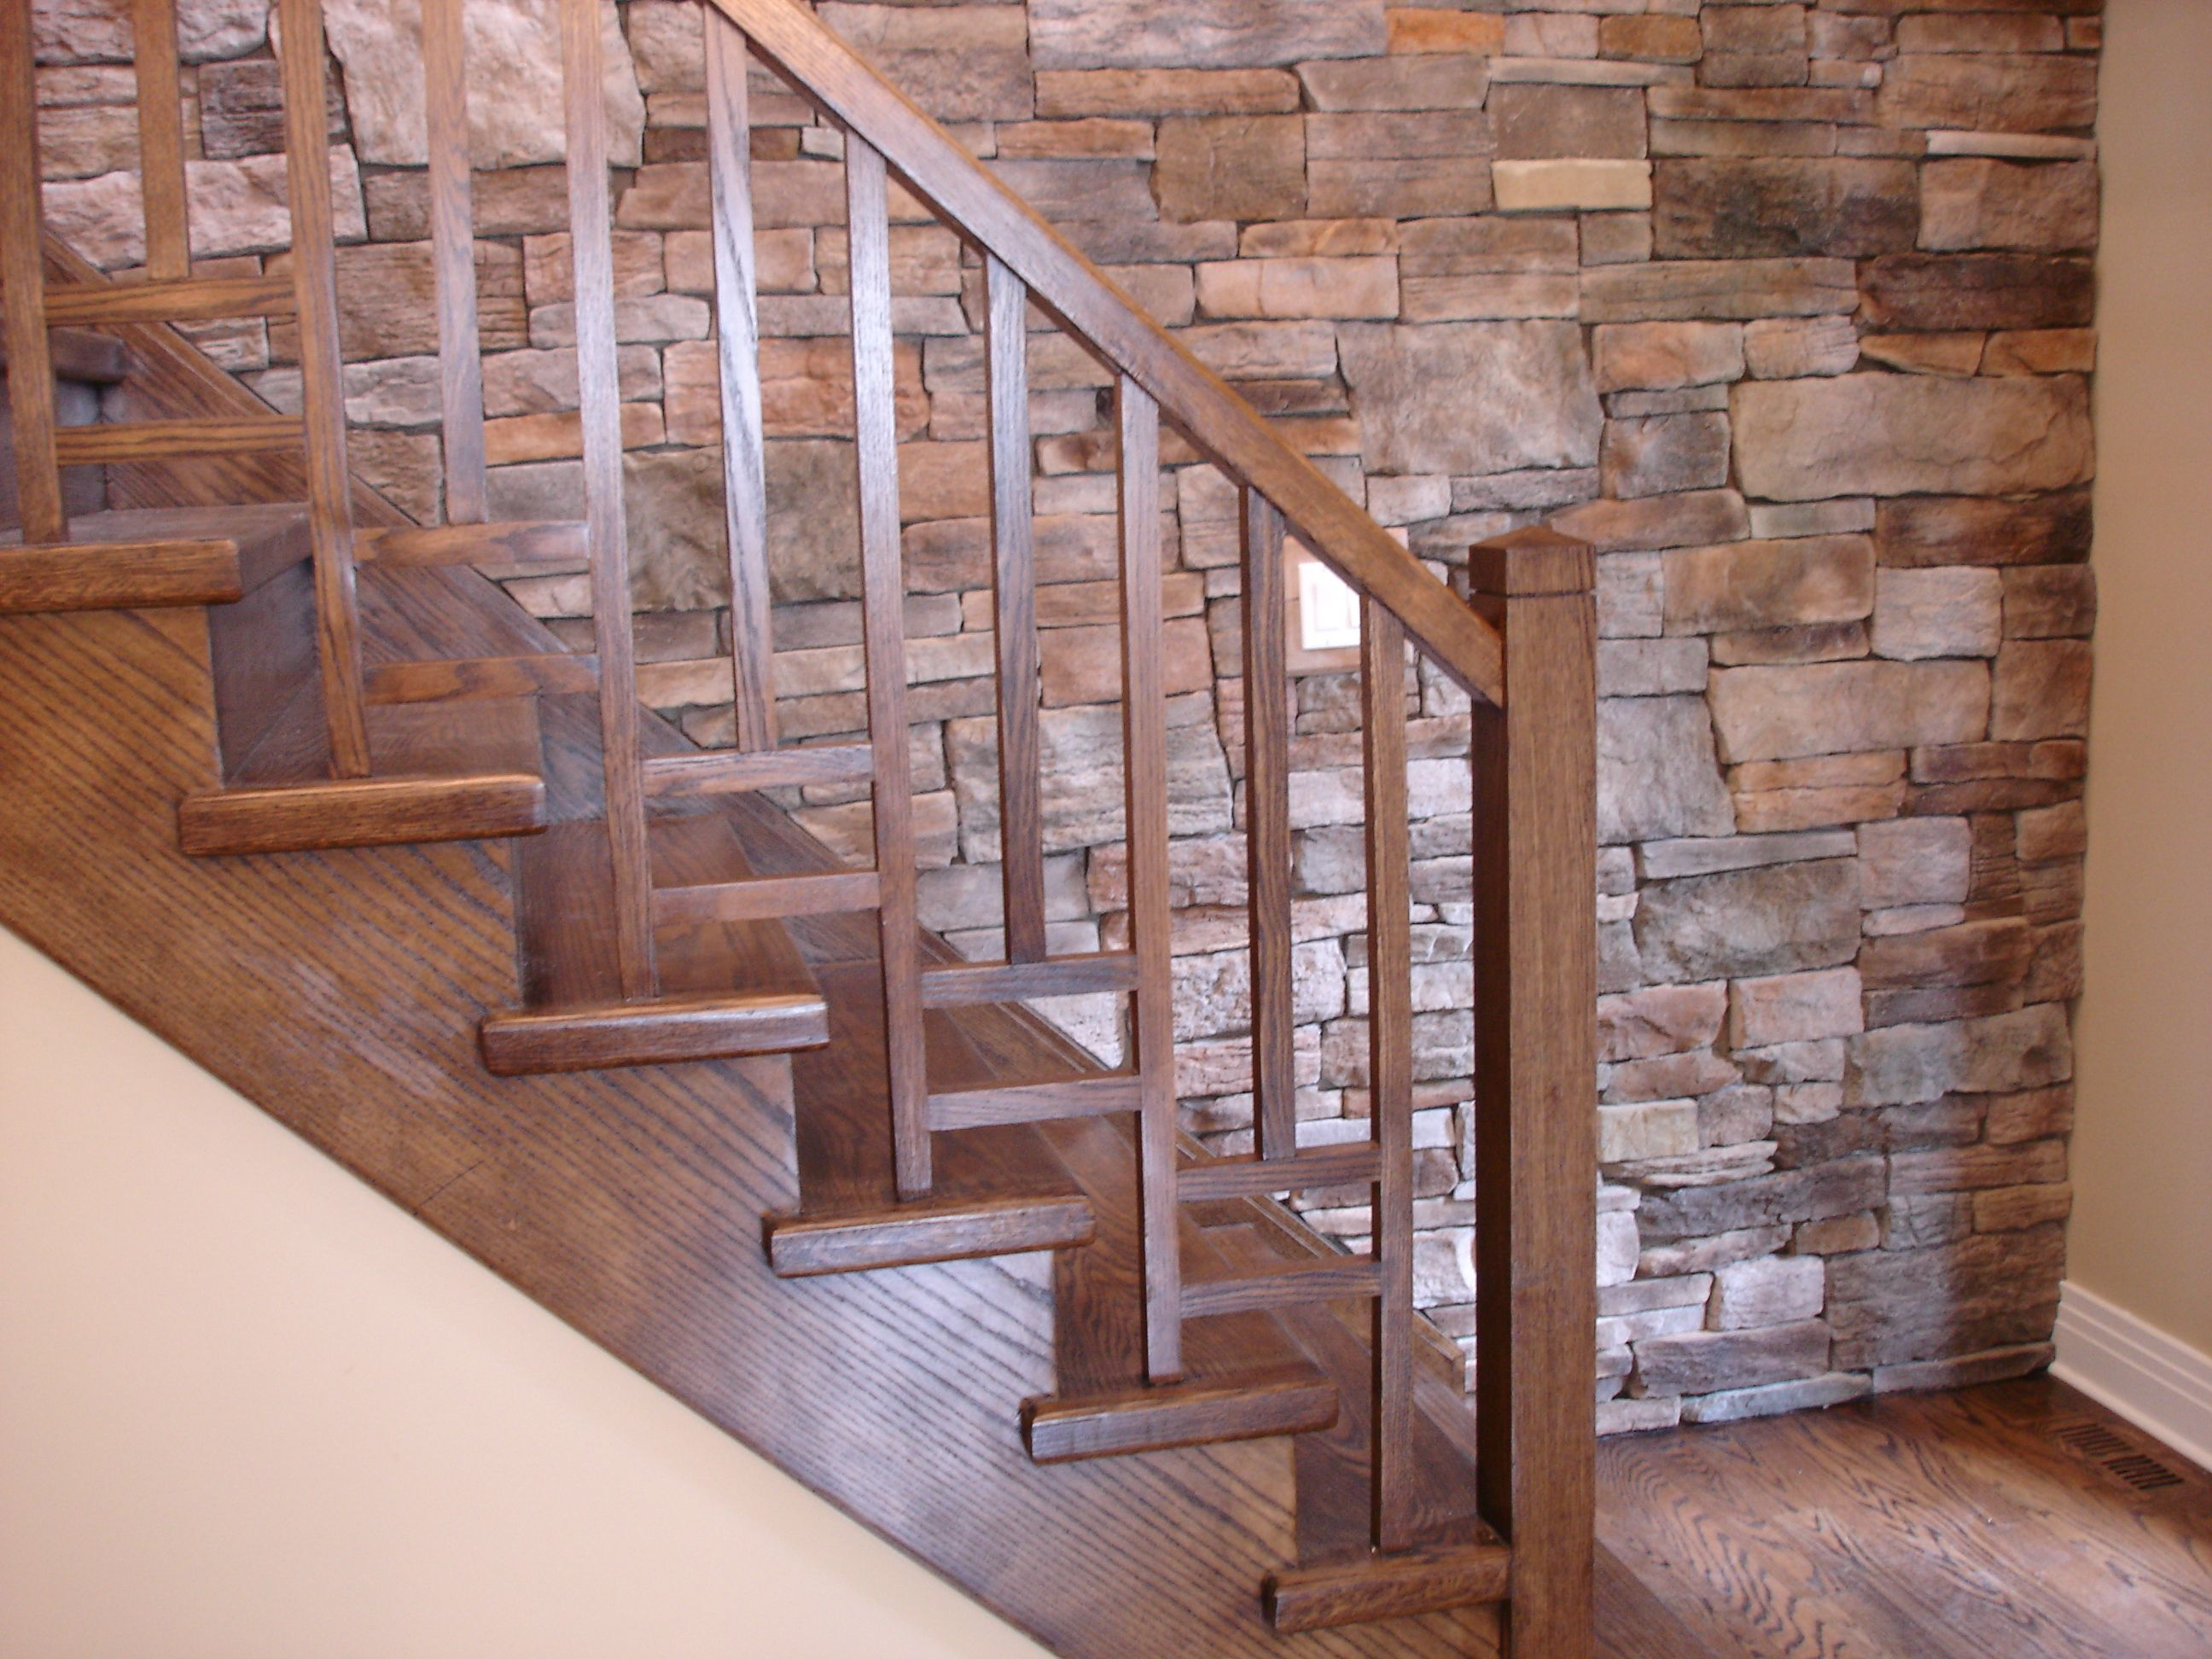 Wall Railings Designs wall railings designs cool front porch attractive front porch good h house designed by group in Modern Interior Stair Railings Mestel Brothers Stairs Rails Inc 516 496 4127 Wood Stair Builders